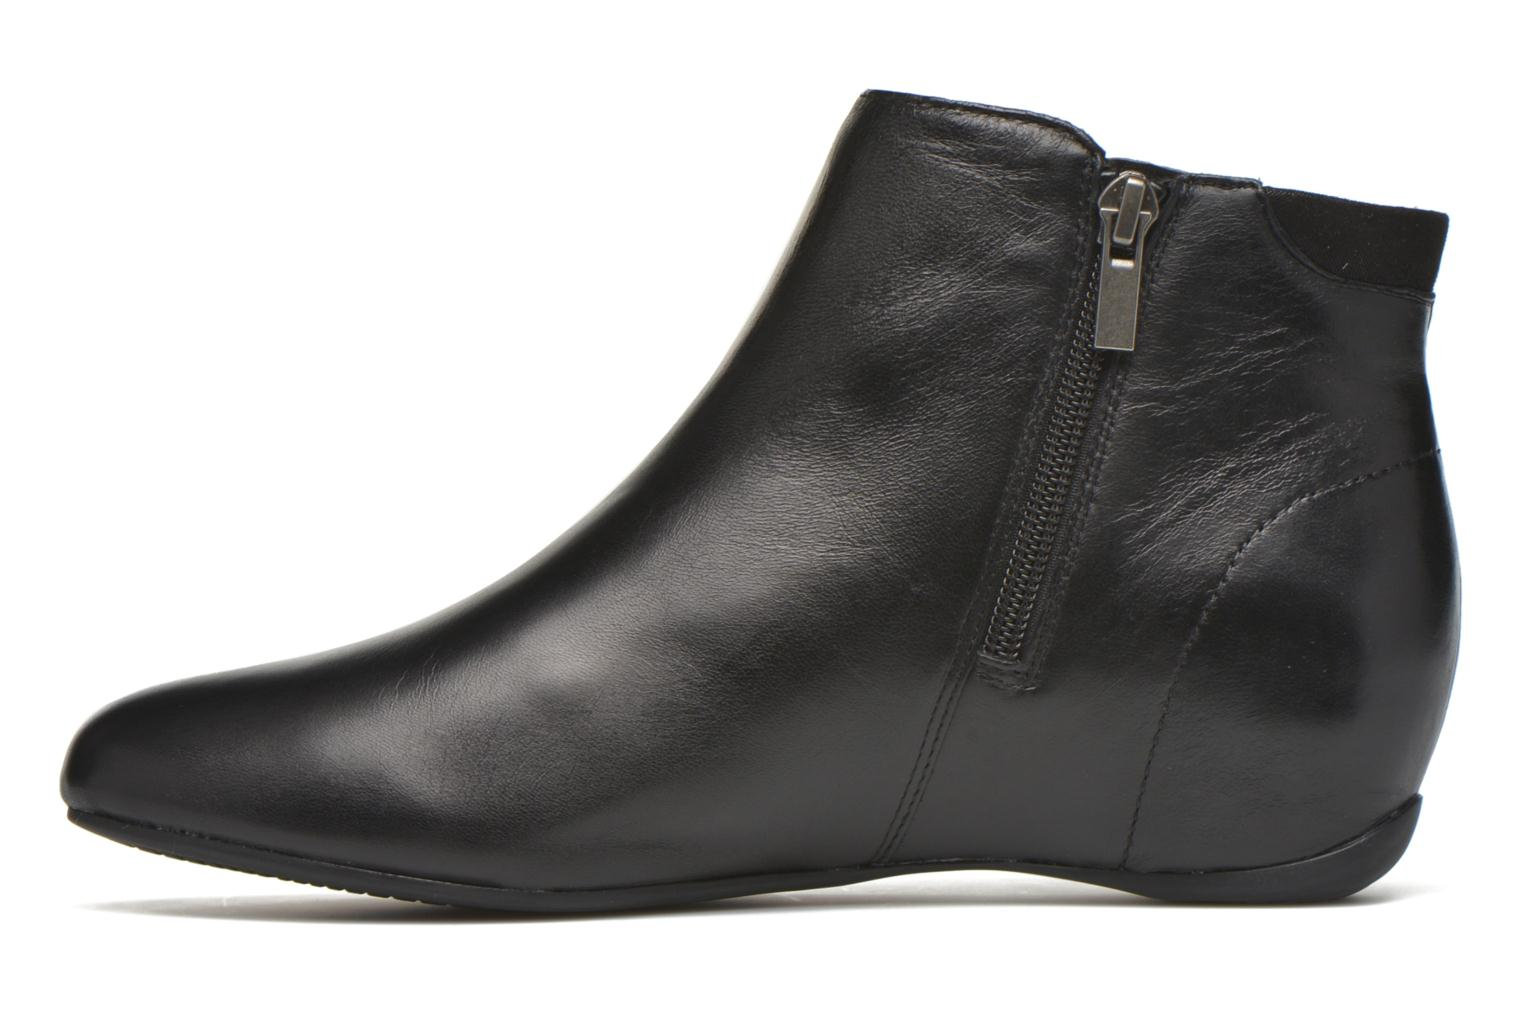 Bottines et boots Rockport Emese Noir vue face